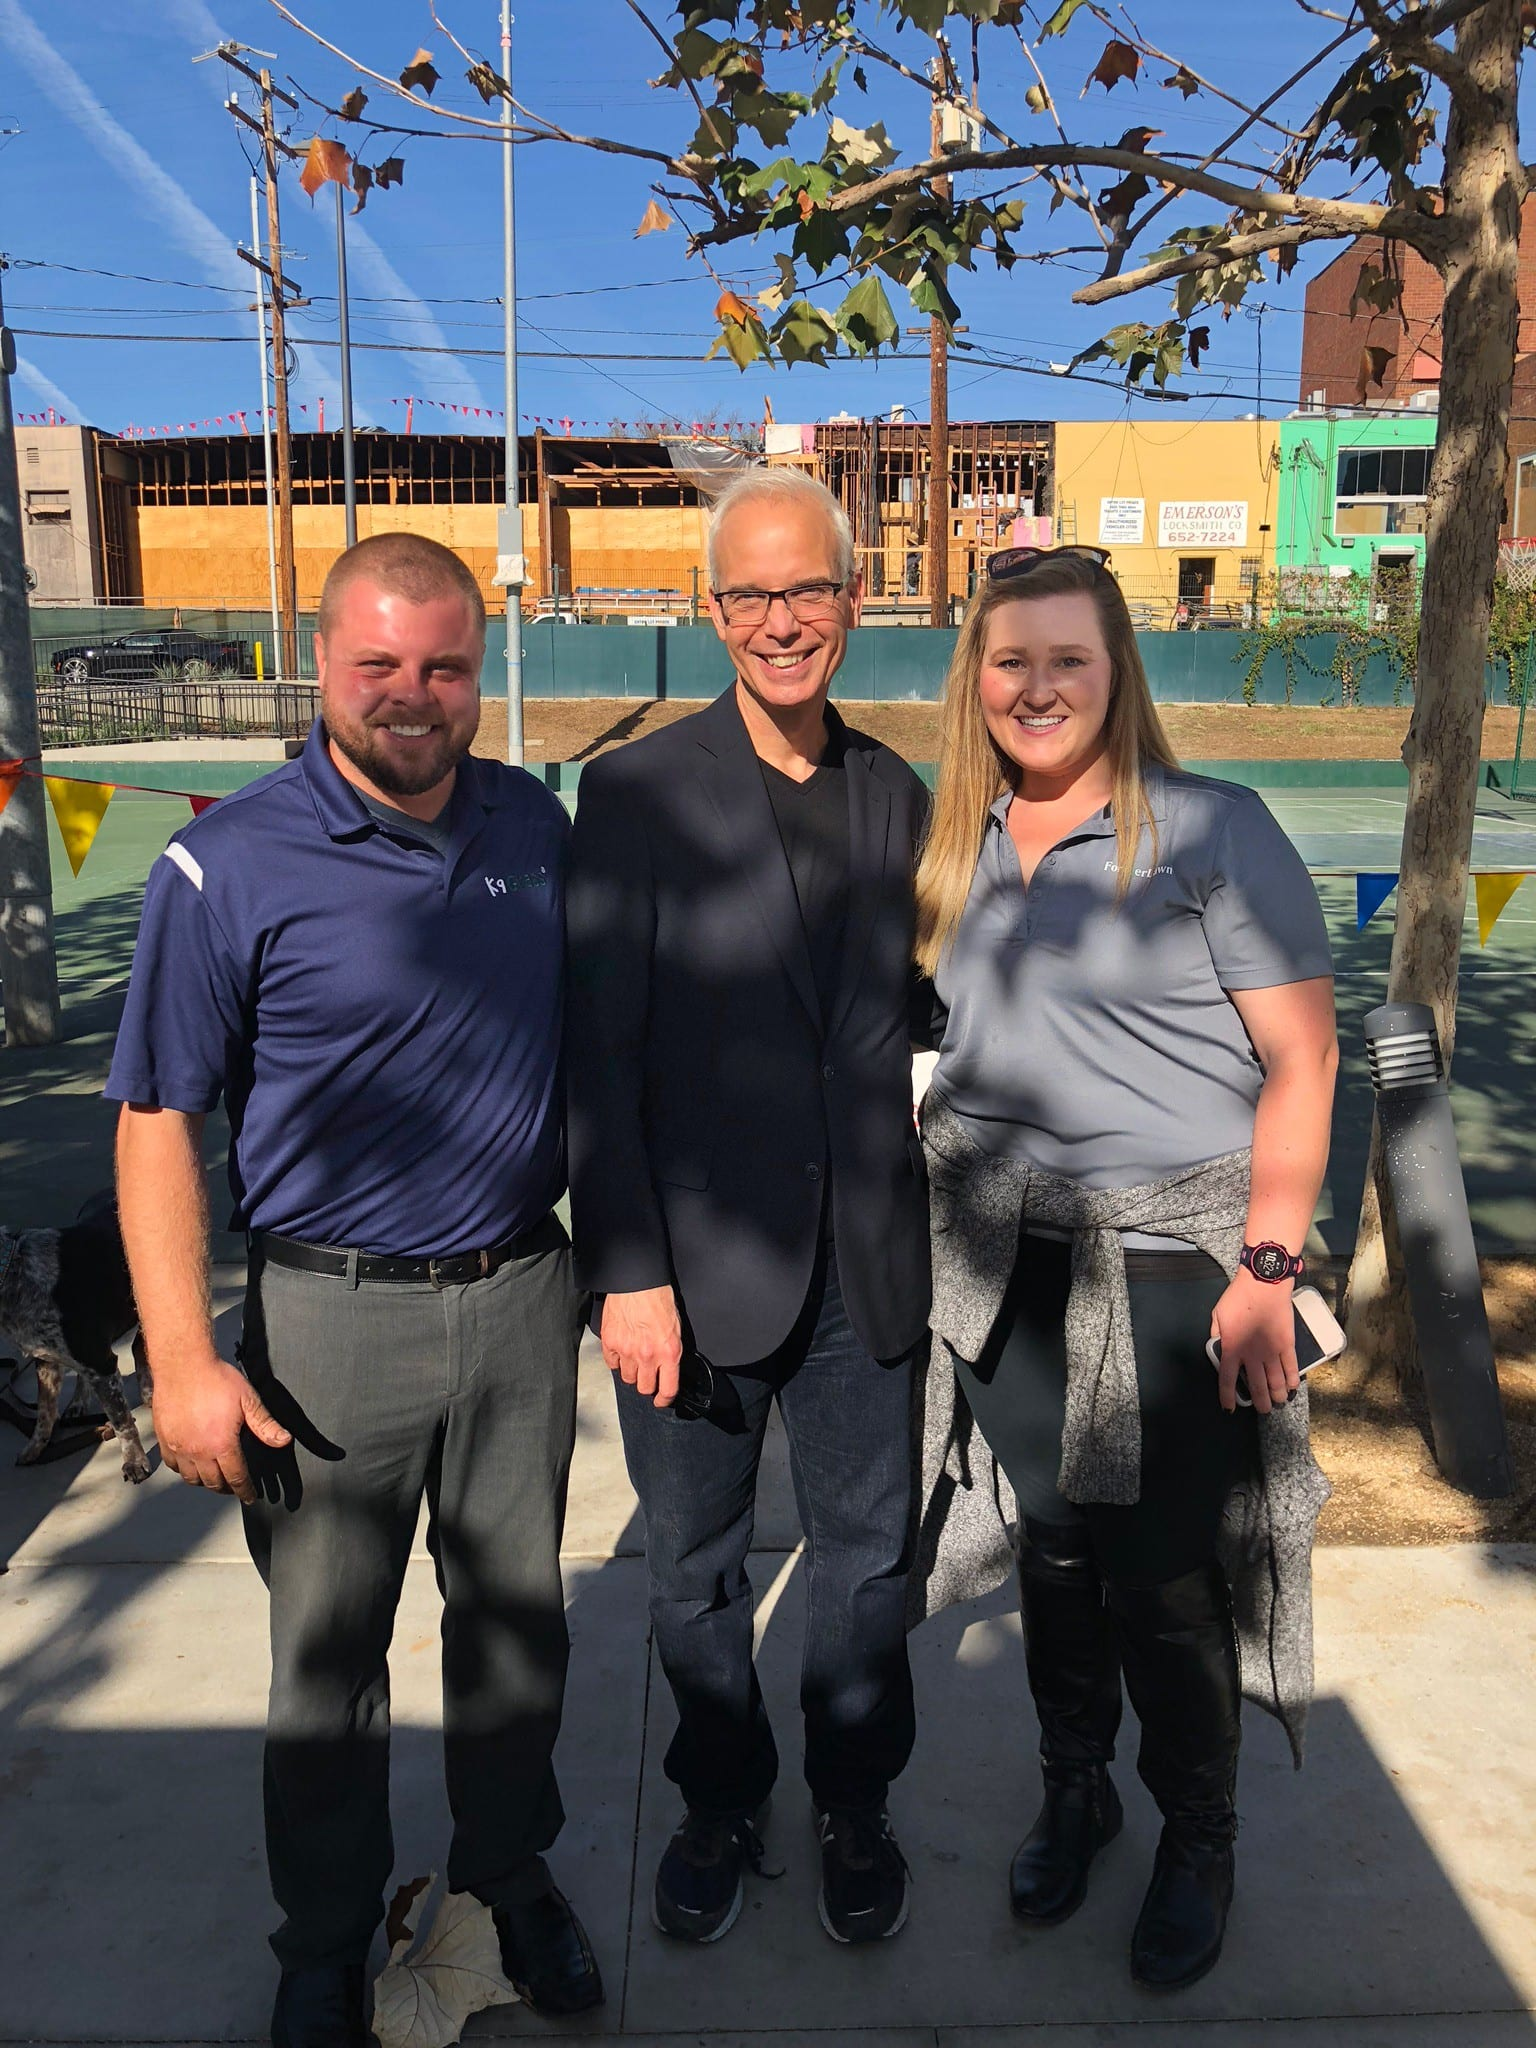 Beth and Corey from ForeverLawn Pacific Coast with Mayor John Heilman